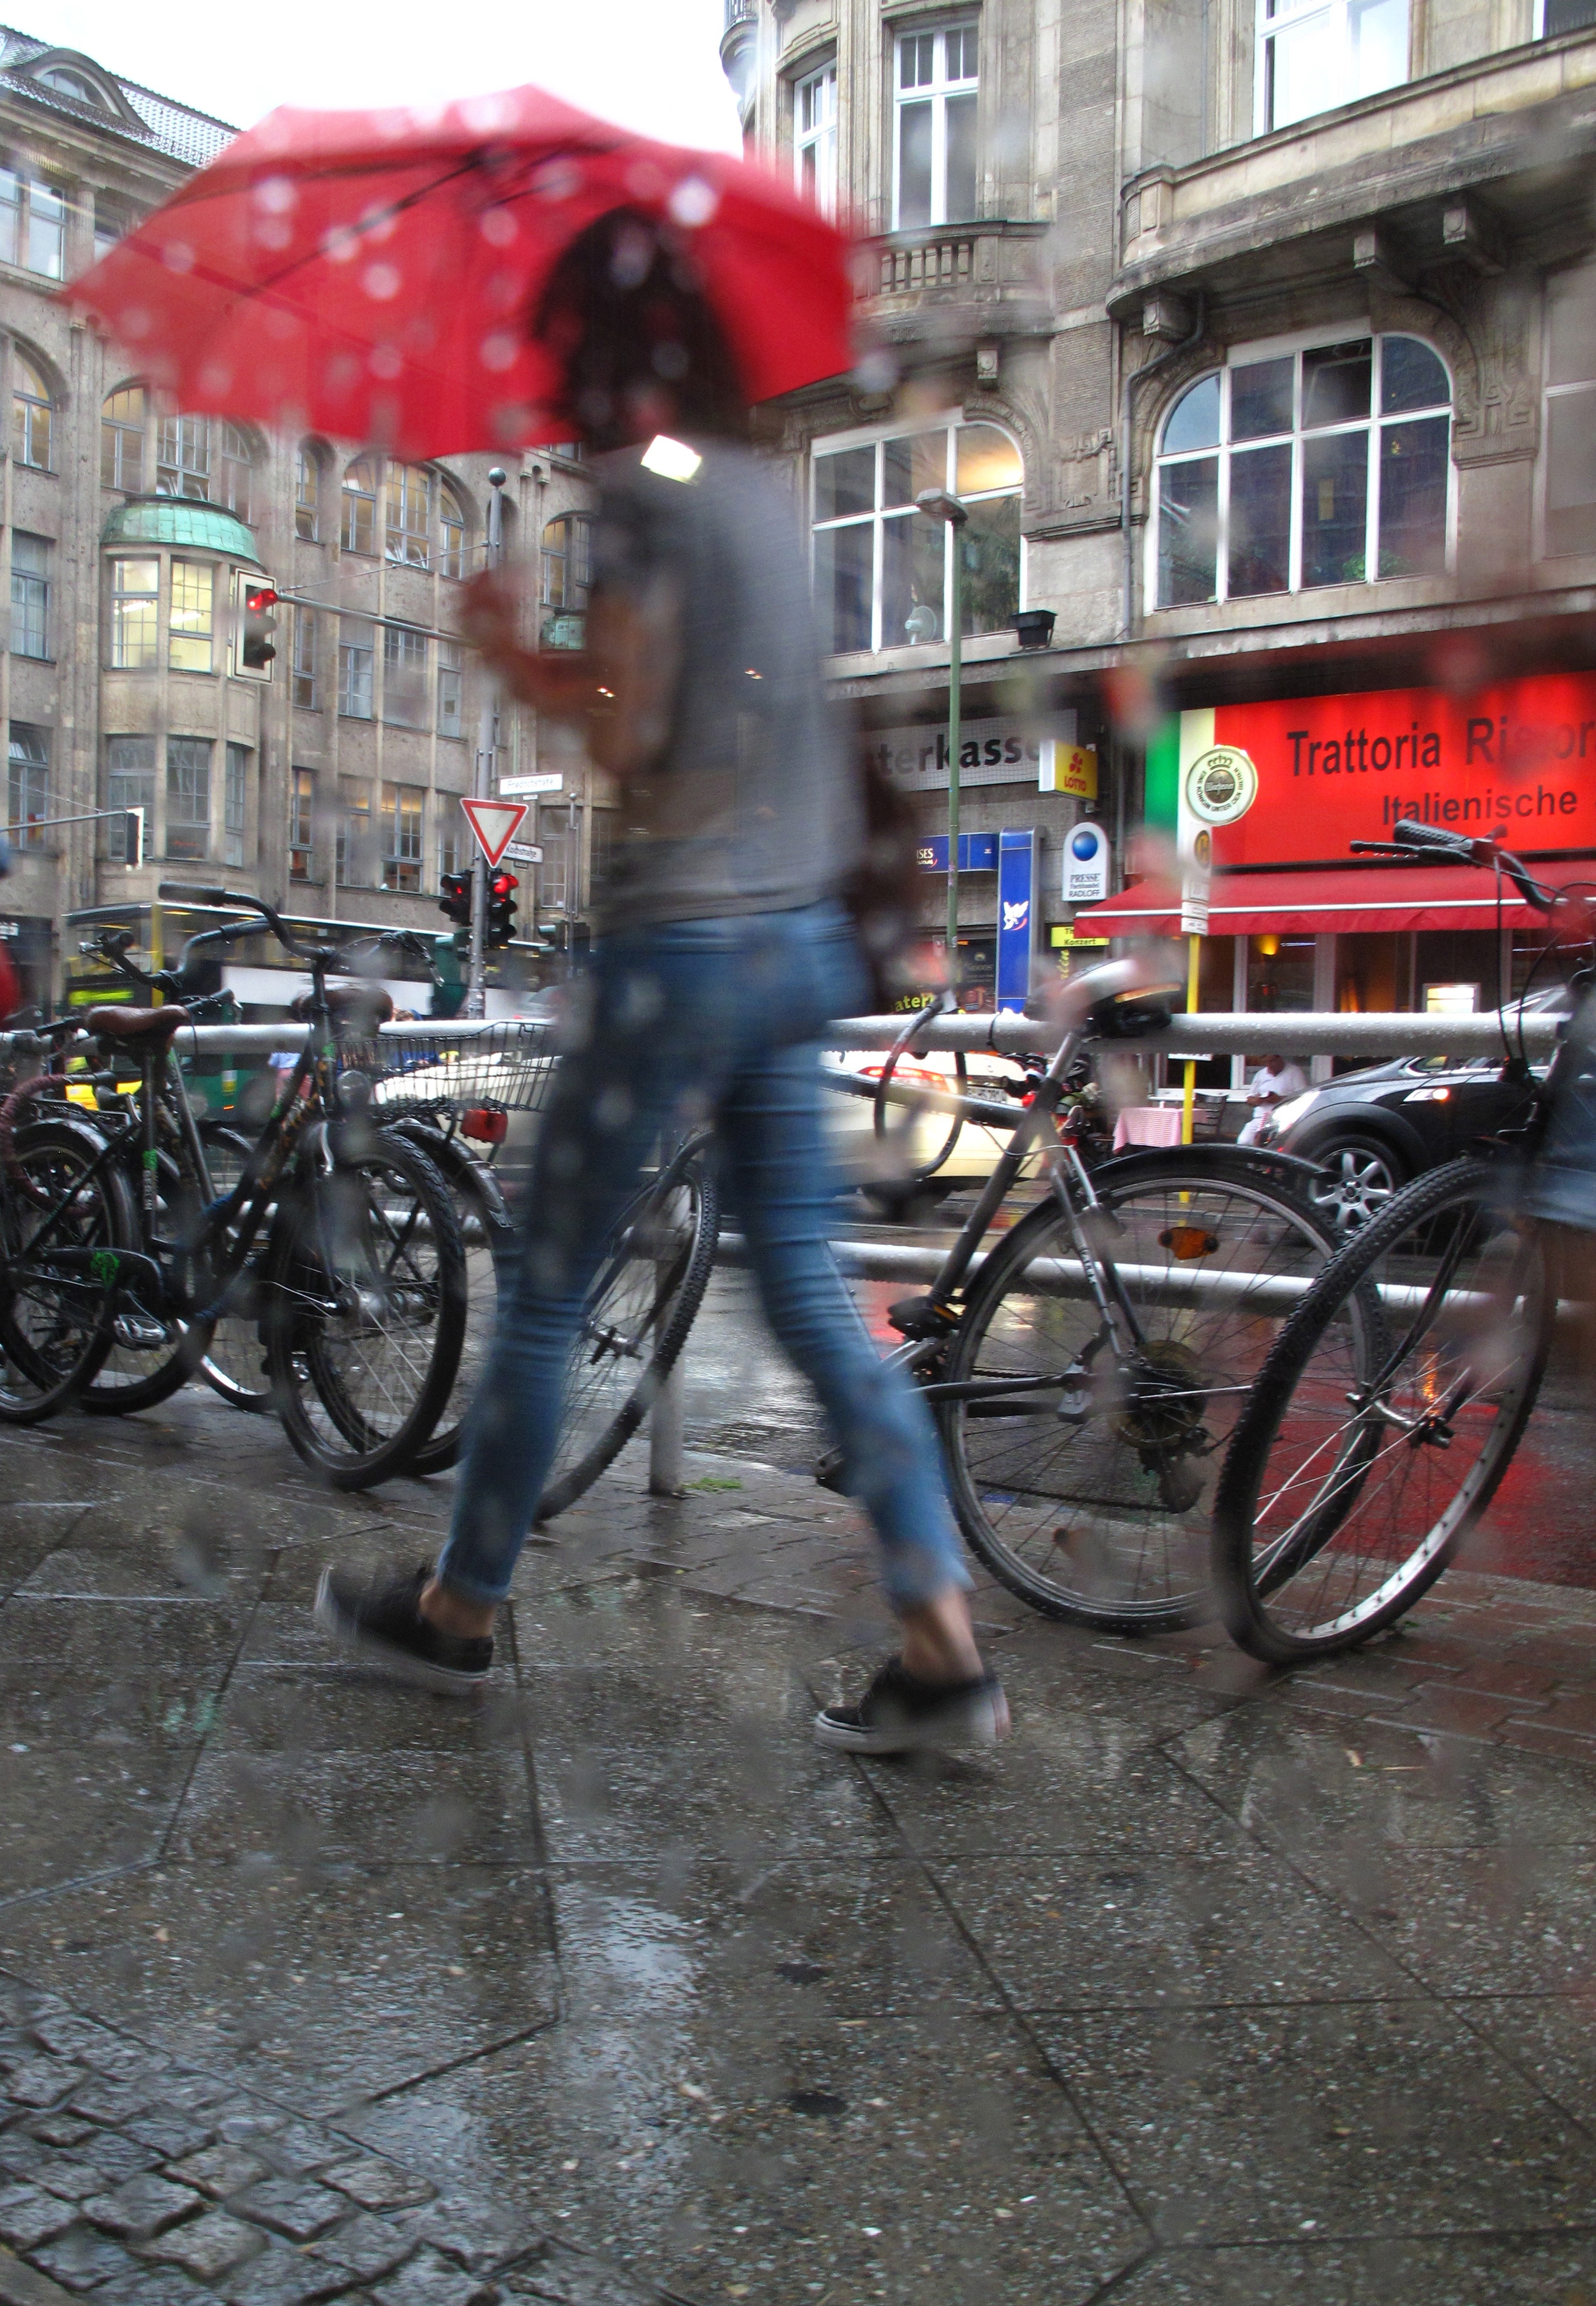 Rain on the window, and people passing with colourful umbrellas in Berlin